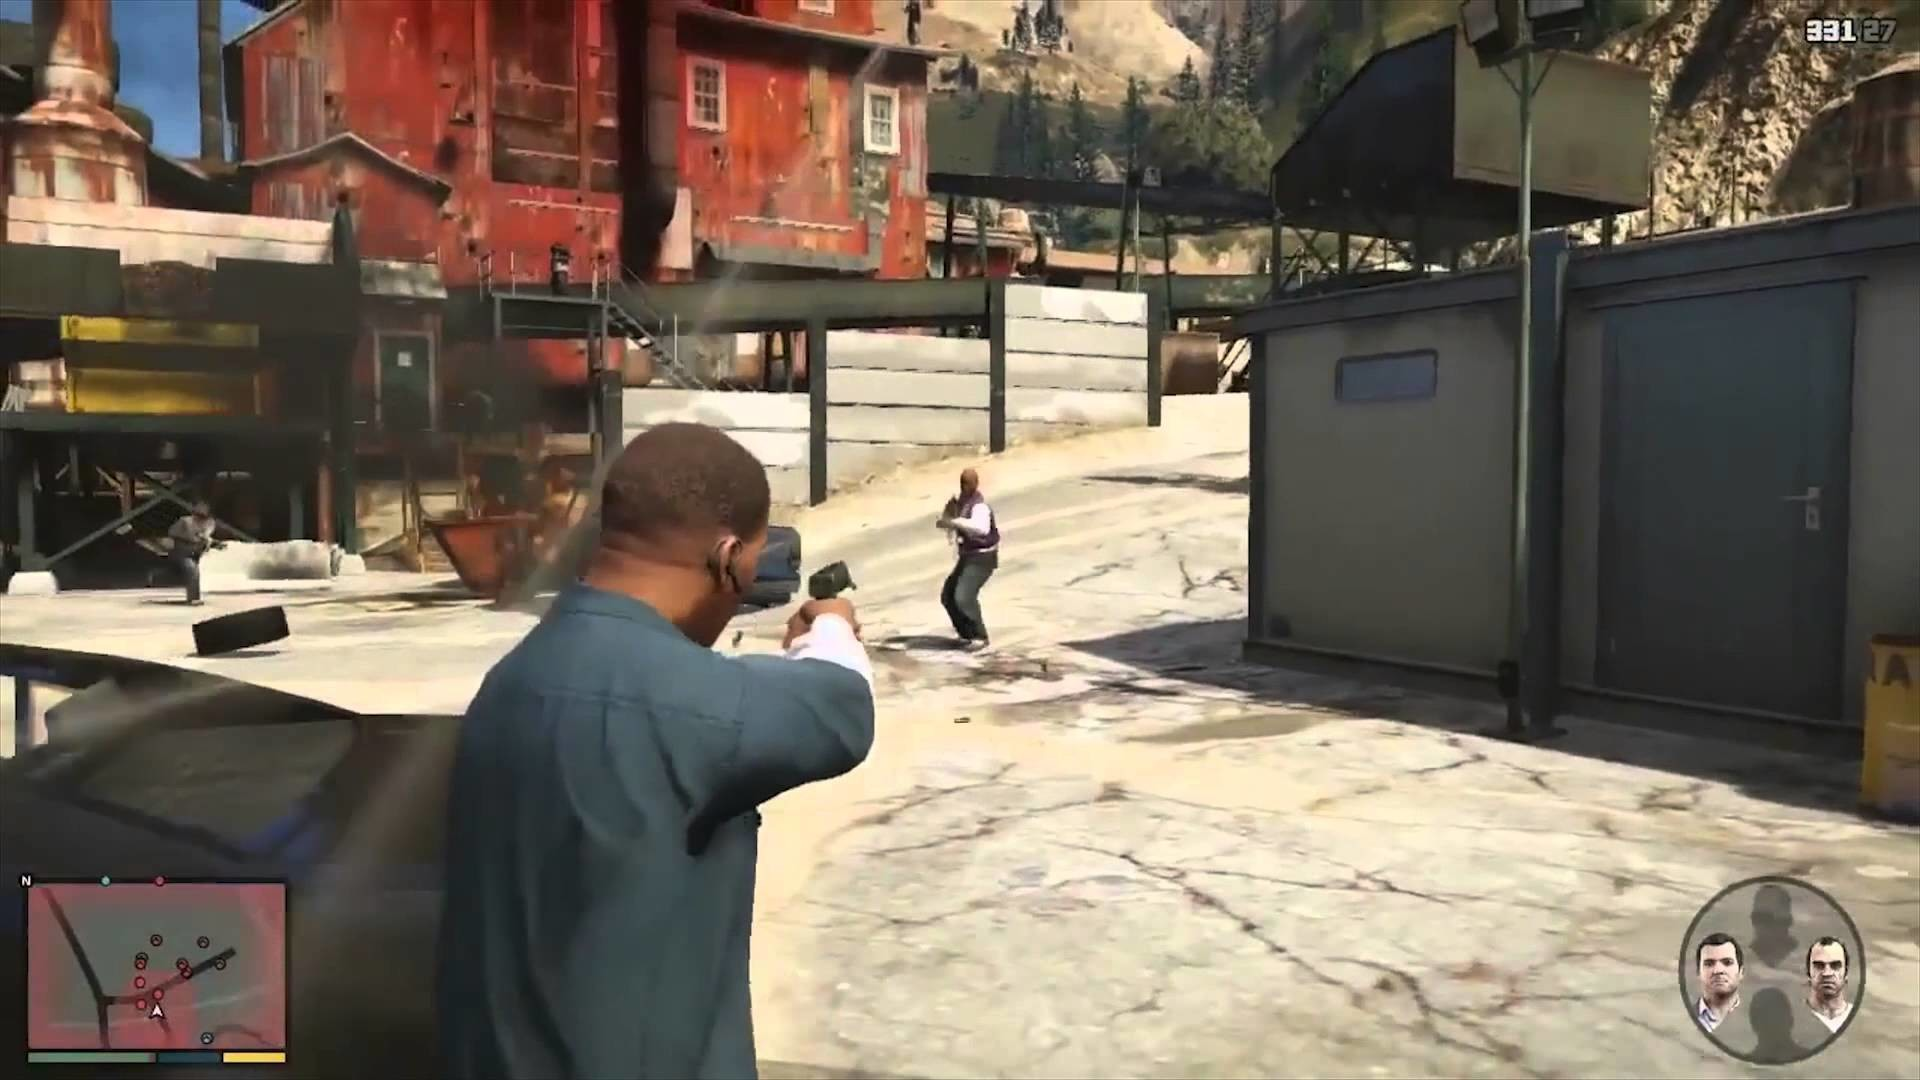 Grand Theft Auto V – GTA 5 Official Gameplay Video HD 1080p BEST QUALITY –  YouTube